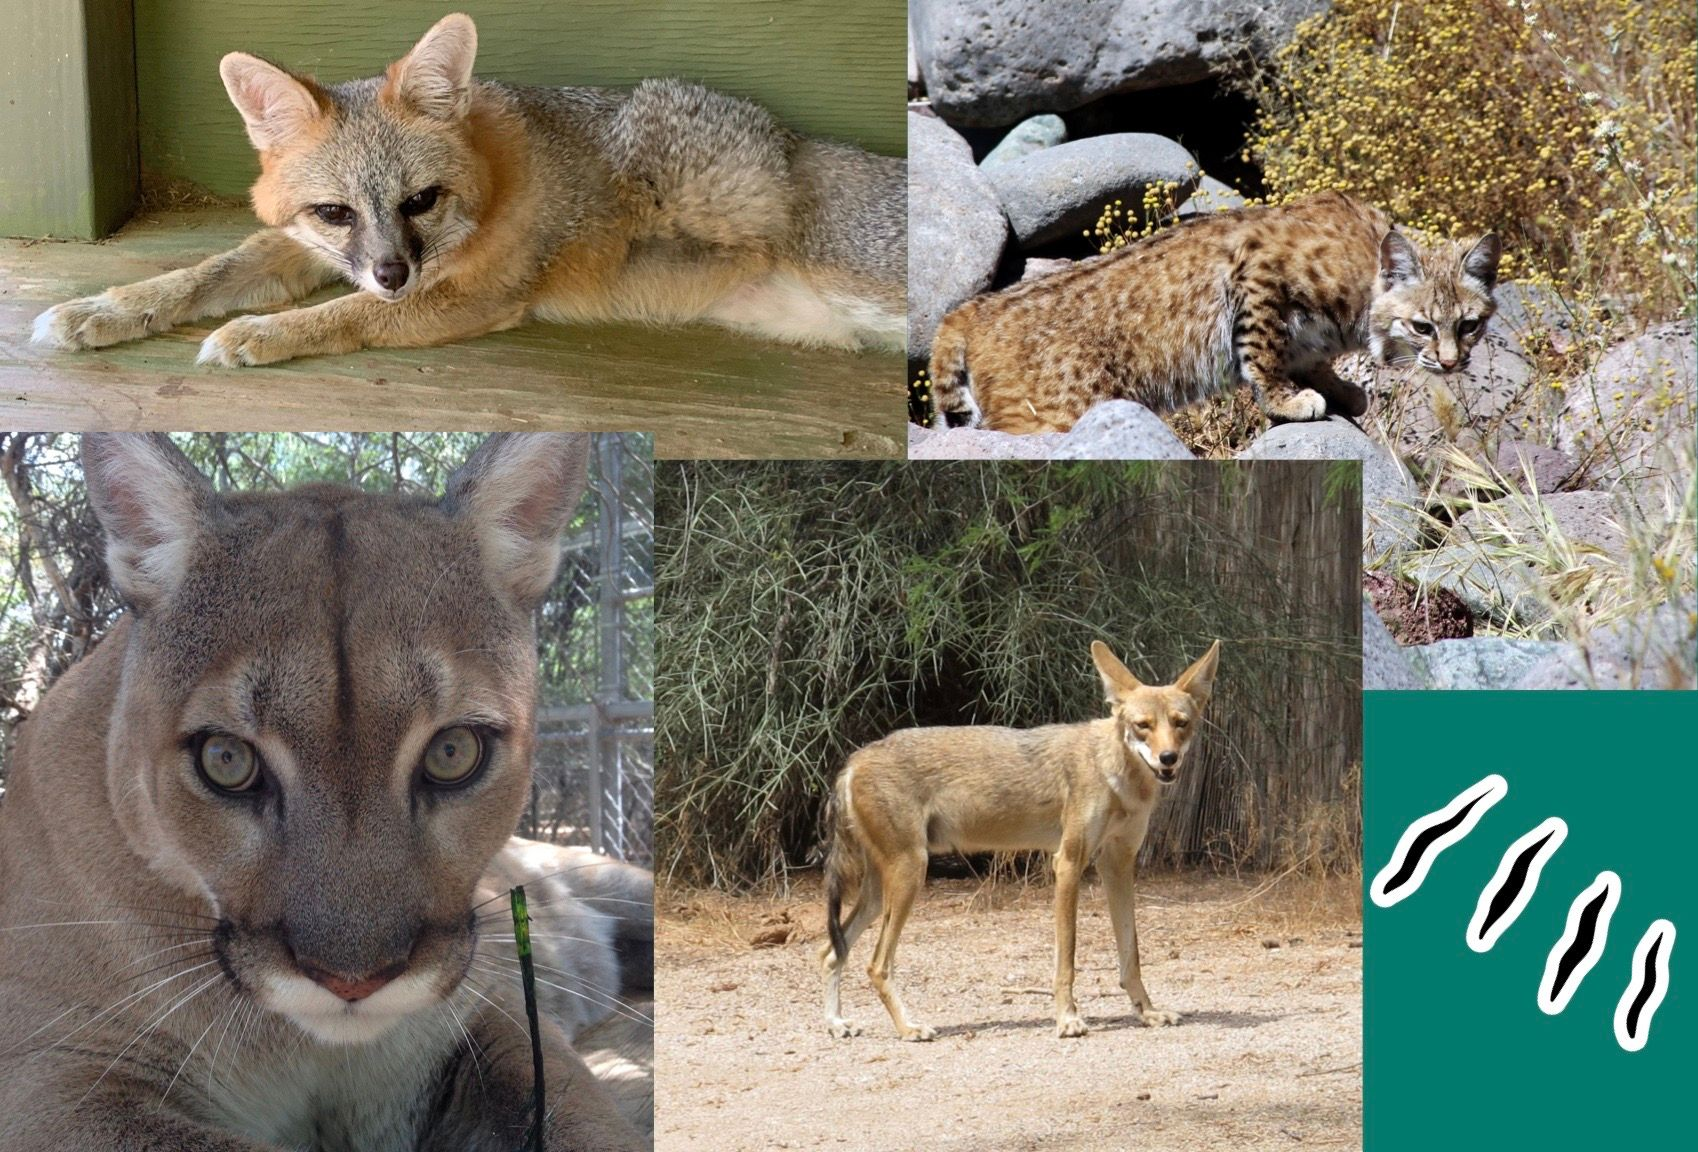 Wildlife Weekly: For Your Protection